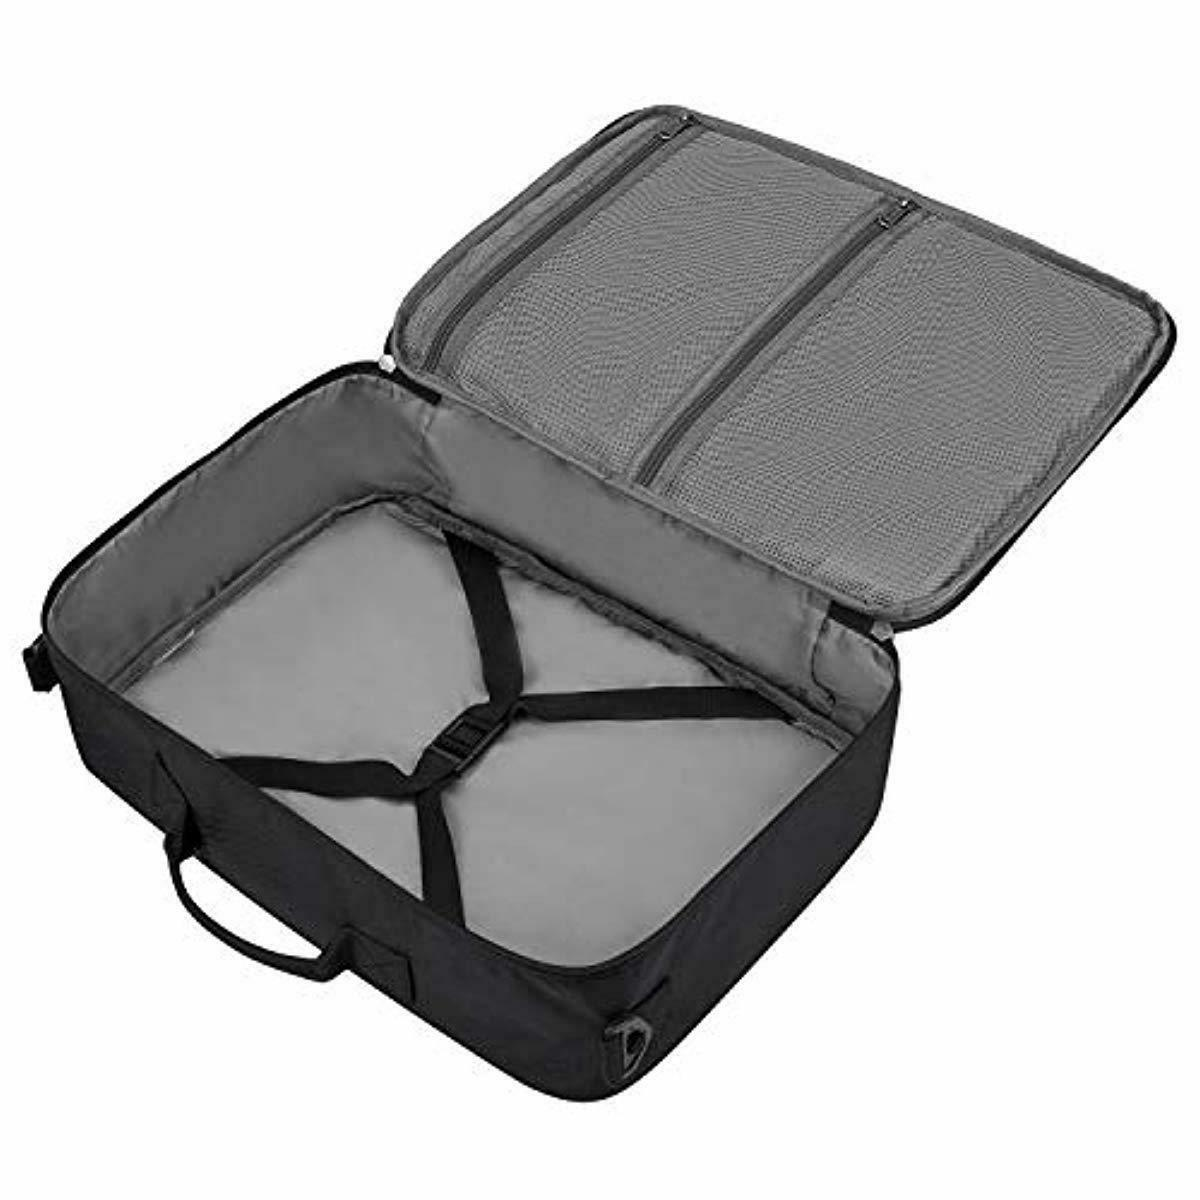 Gonex Travel Portable Carry on Personal Item for Airline